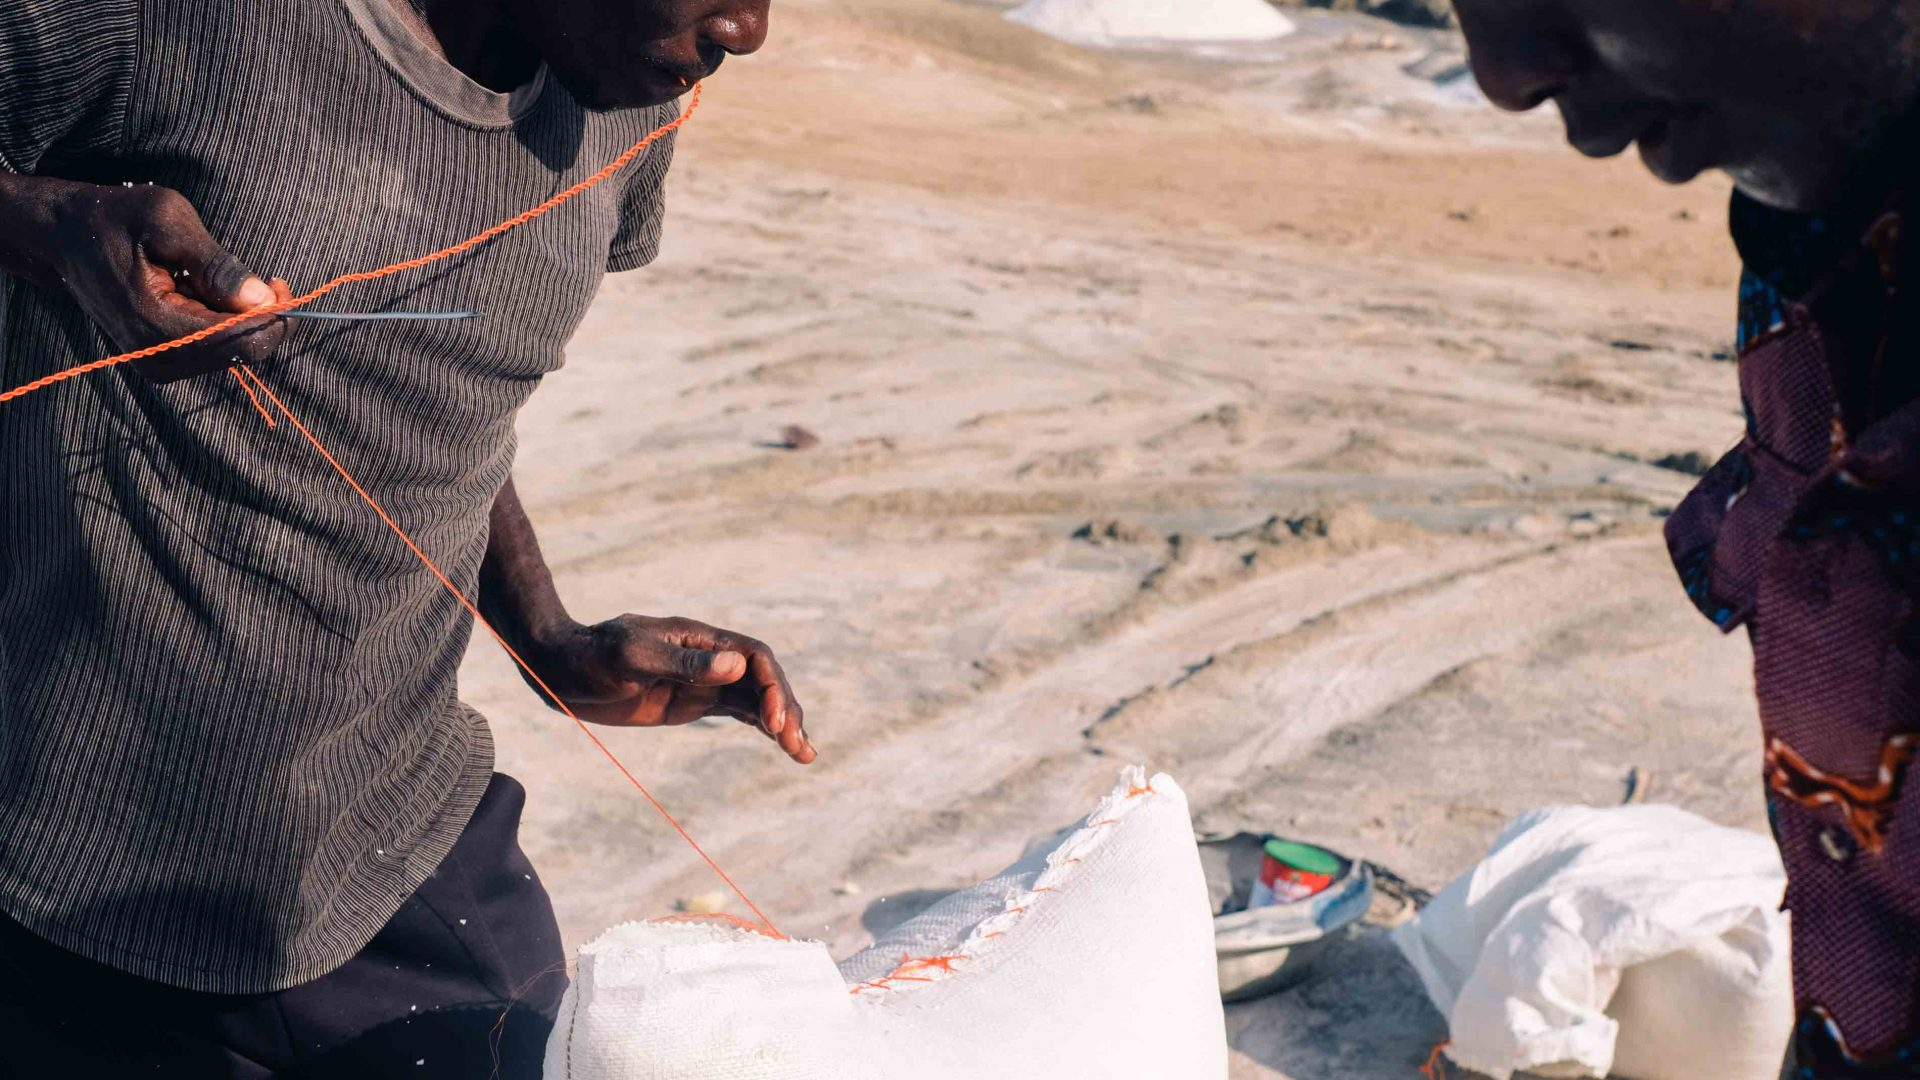 Two men working in the hot sun stitch up bags of salt with red string at Songor Salt Lagoon, Ghana.